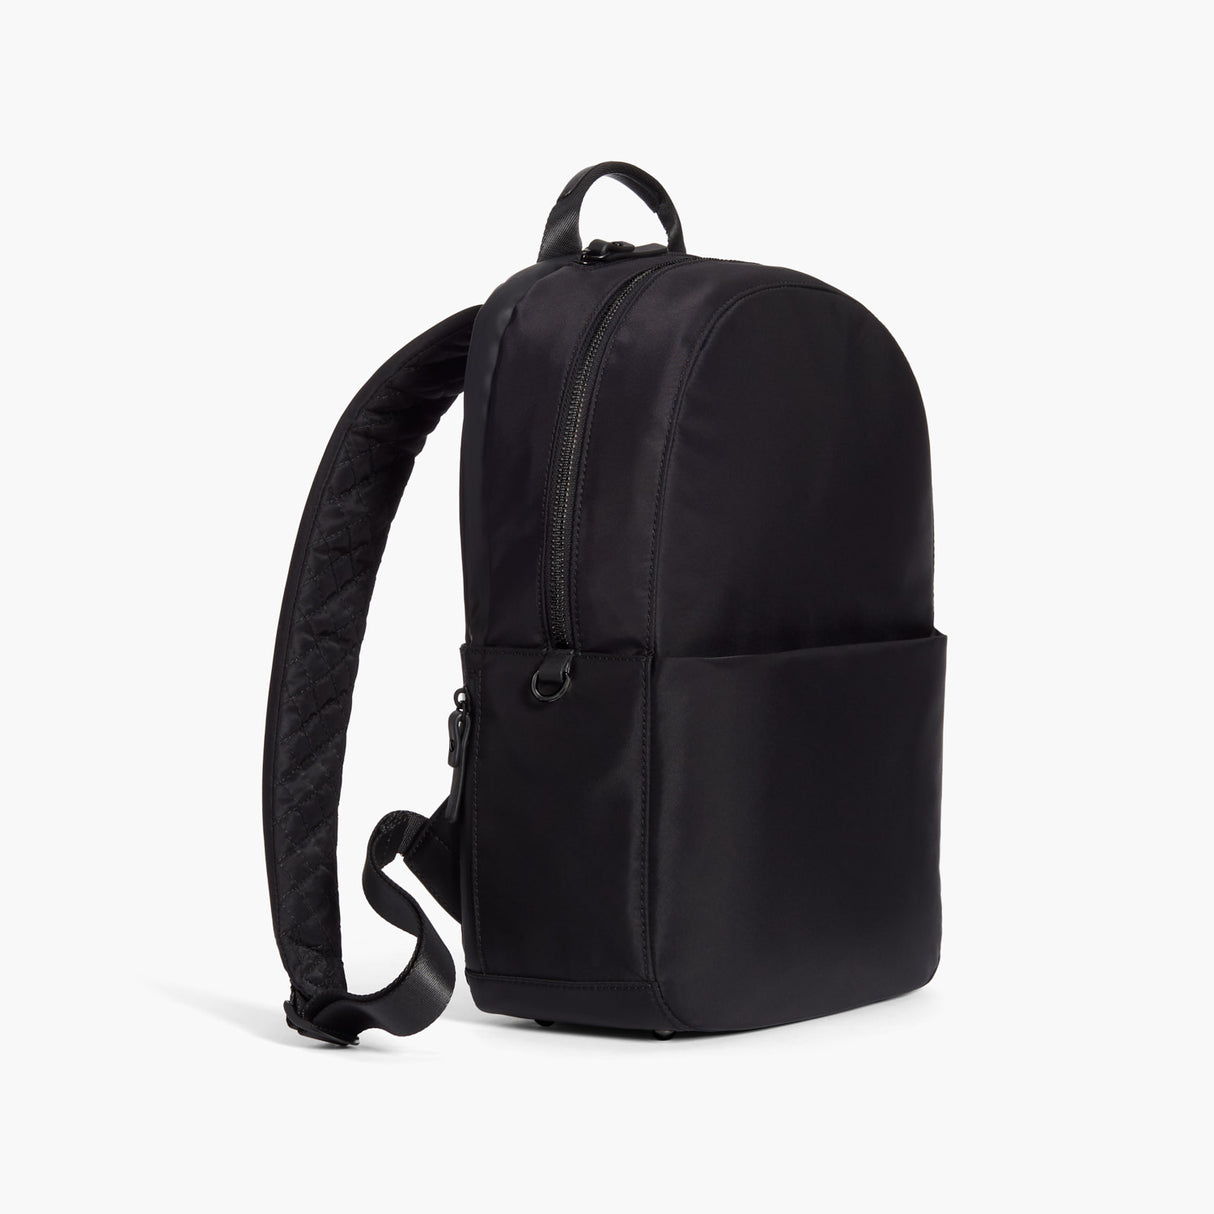 Side - Beacon - Nylon - Black / Gunmetal / Azure - Backpack - Lo & Sons